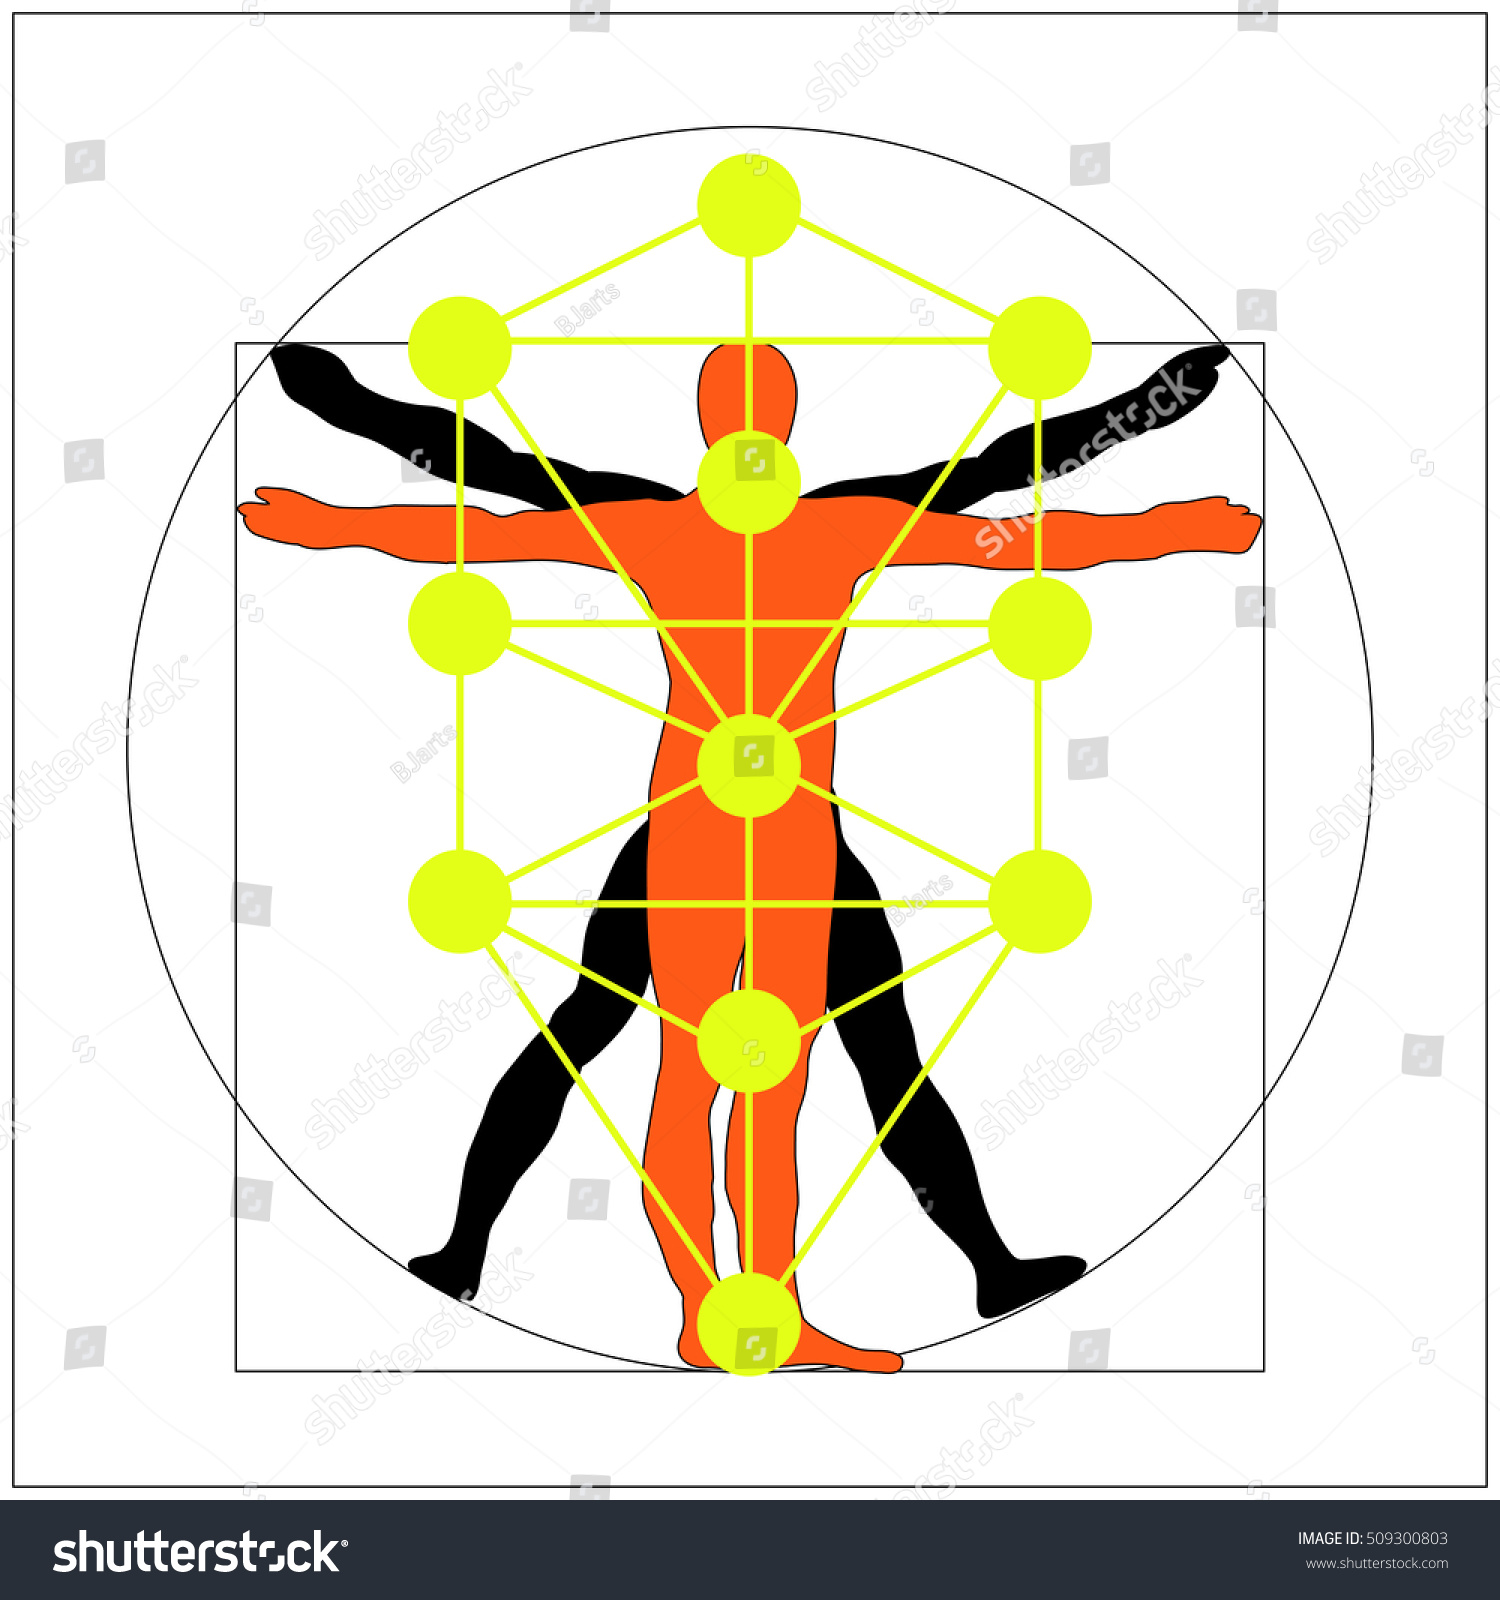 Kabbalah Tree Life Leonardo Da Vinci Stock Vector Royalty Free 509300803 Check out our tree of life kabbalah selection for the very best in unique or custom, handmade pieces from our pendants shops. https www shutterstock com image vector kabbalah tree life leonardo da vinci 509300803